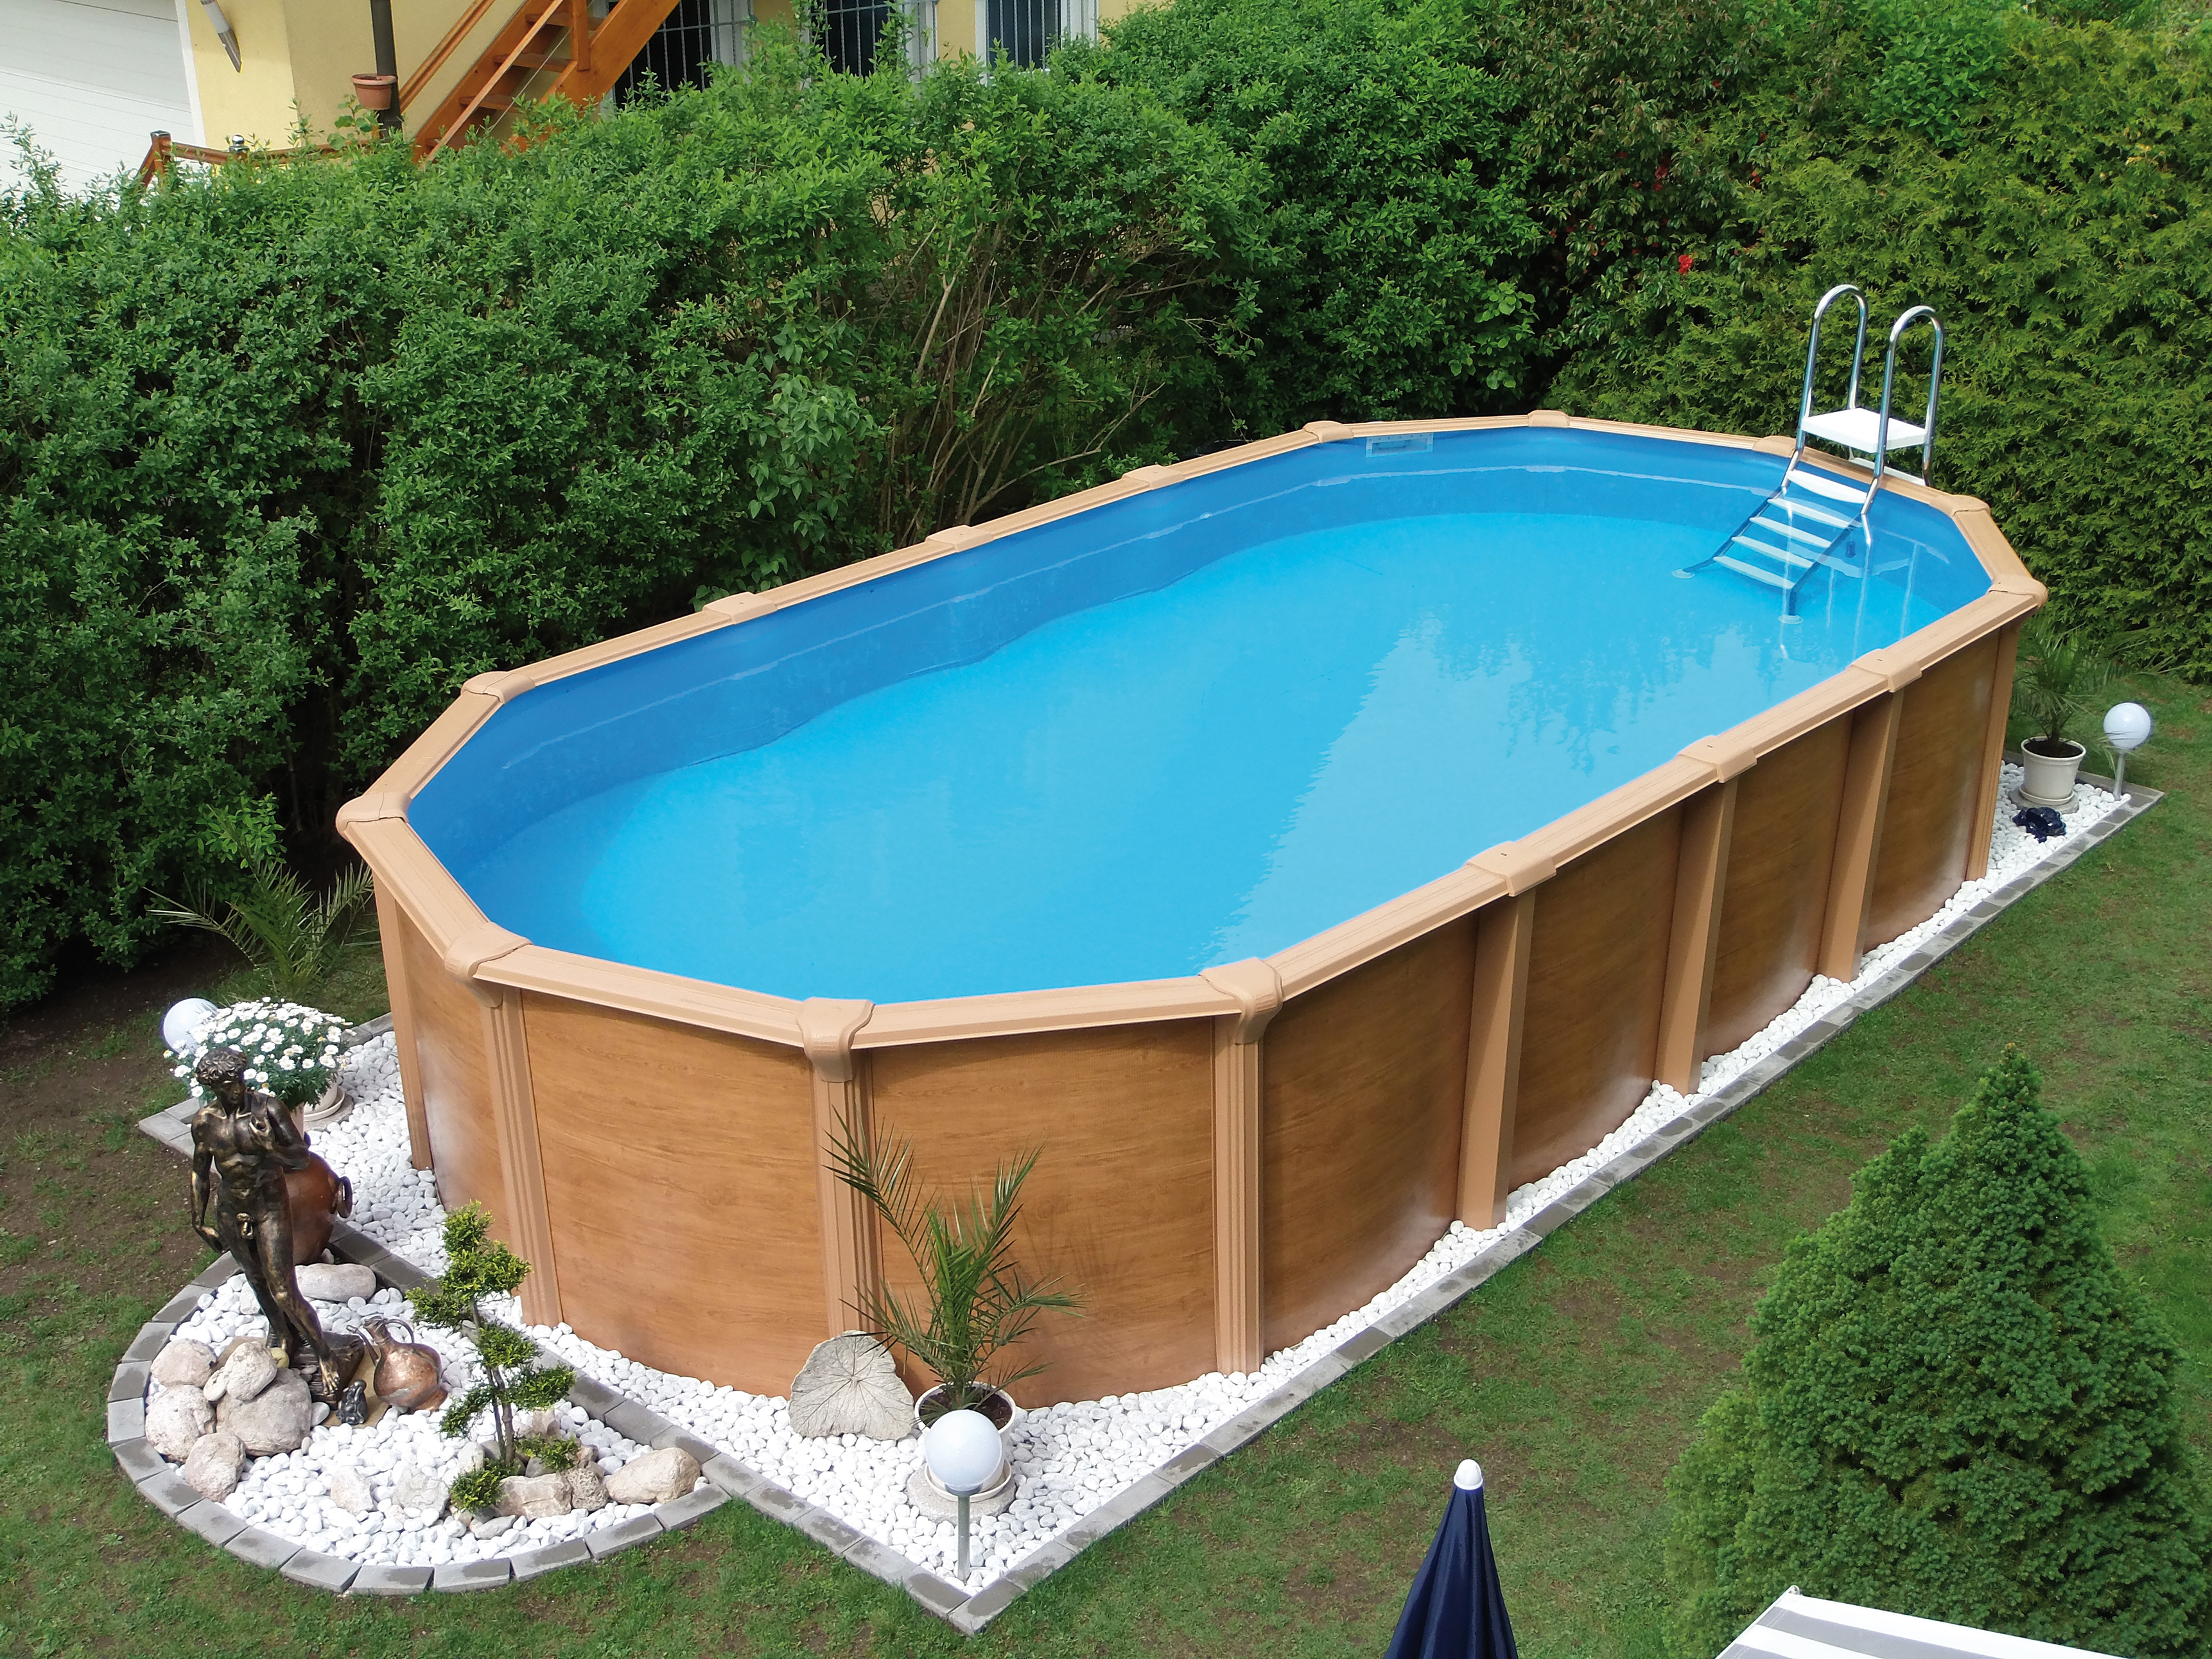 Zwembad 7 X 3 Steirerbecken Pool 6 1x3 7x1 32m Supreme De Luxe Wood